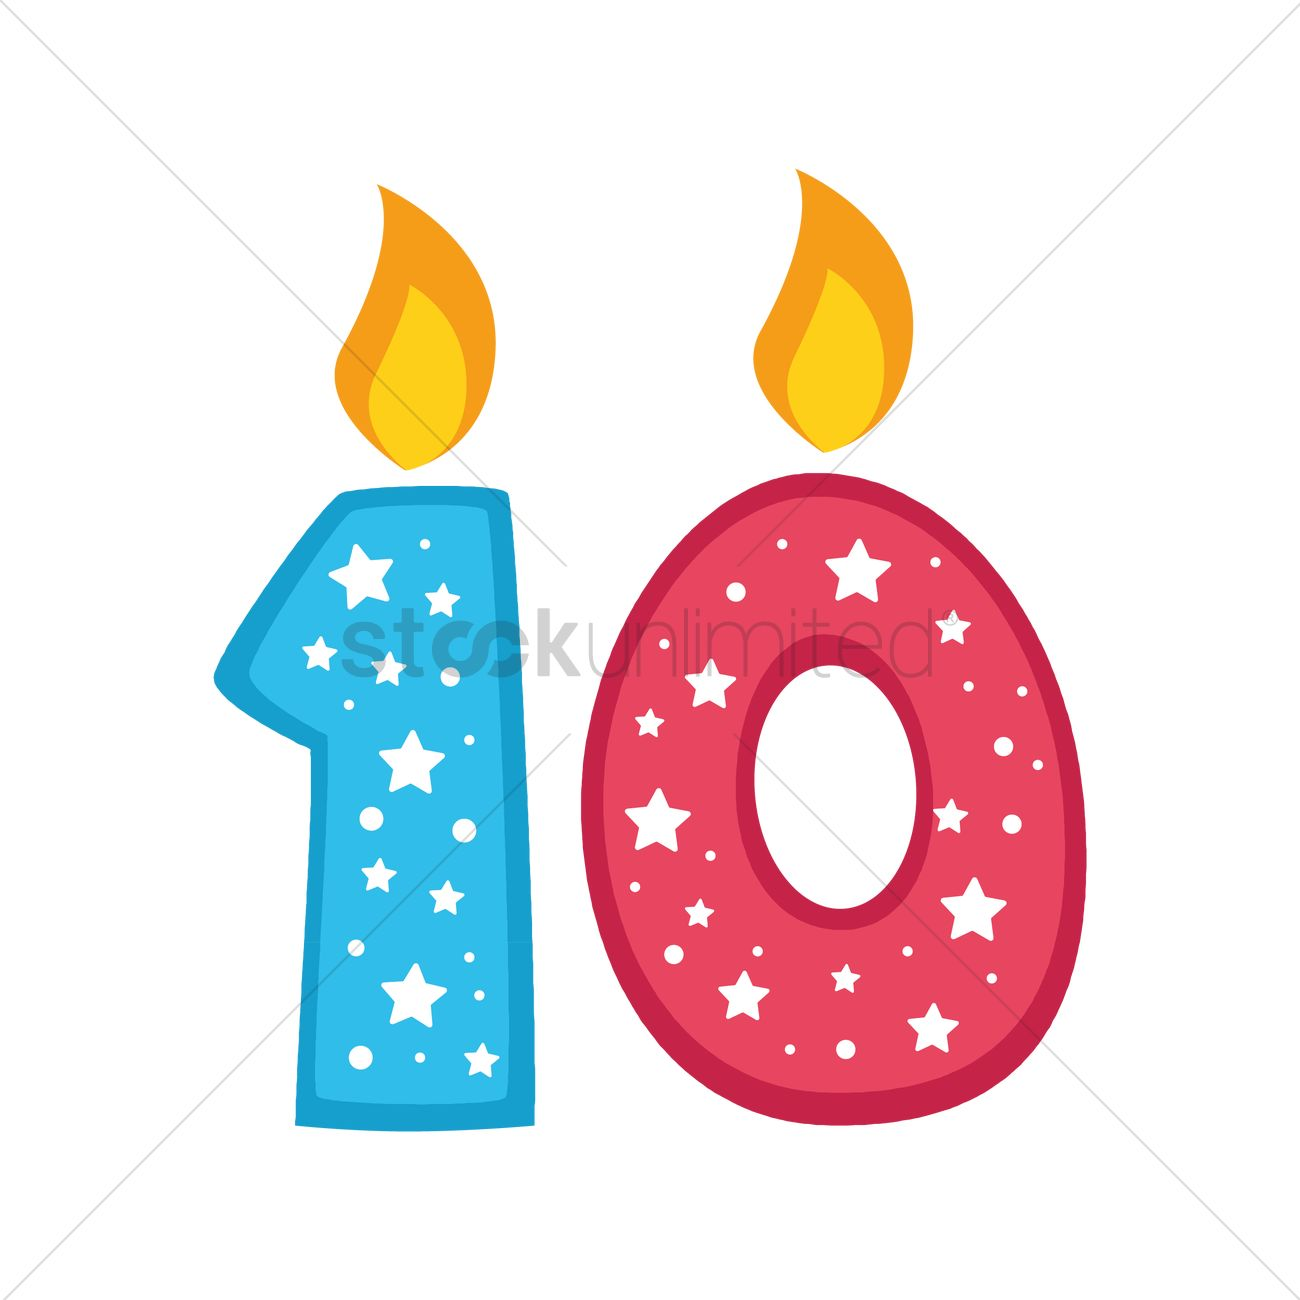 10 >> Number 10 Candles Vector Image 1389028 Stockunlimited